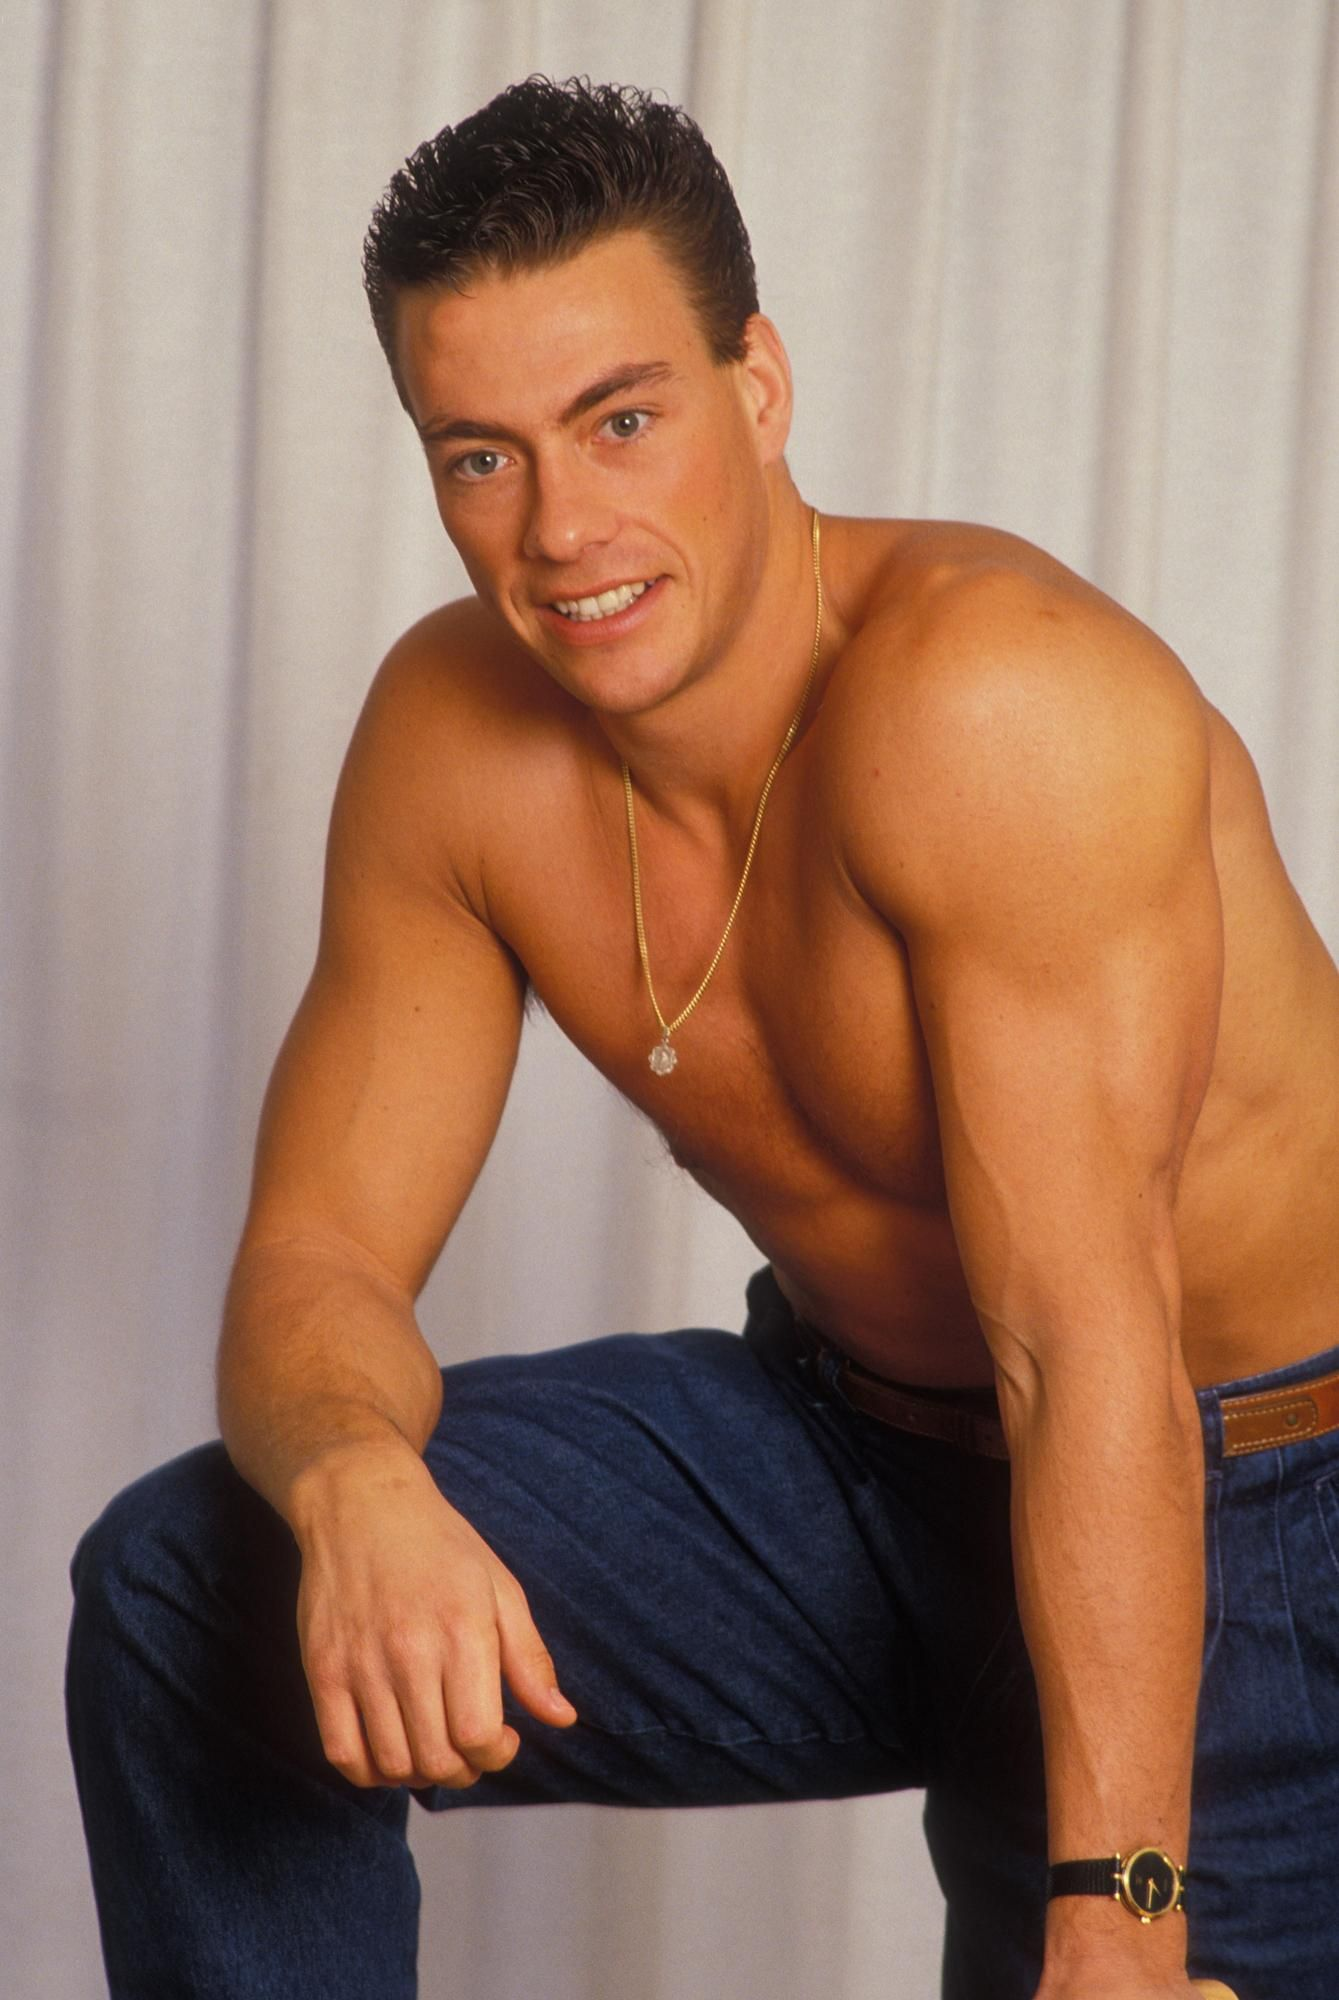 Jean Claude Van Damme photo gallery 82 high quality pics